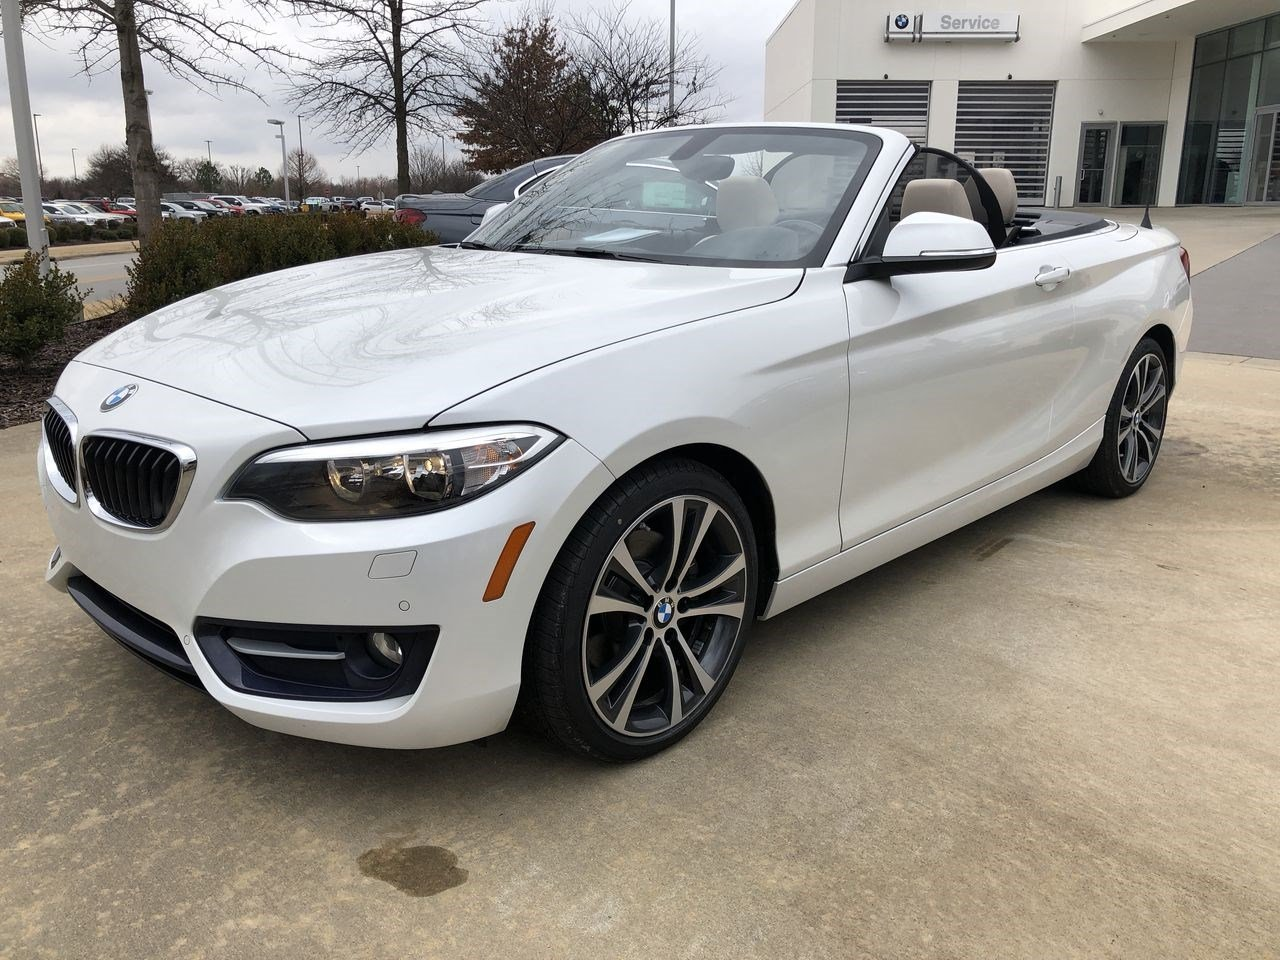 Certified Pre-Owned 2017 BMW 2 Series Cv 230i xDrive